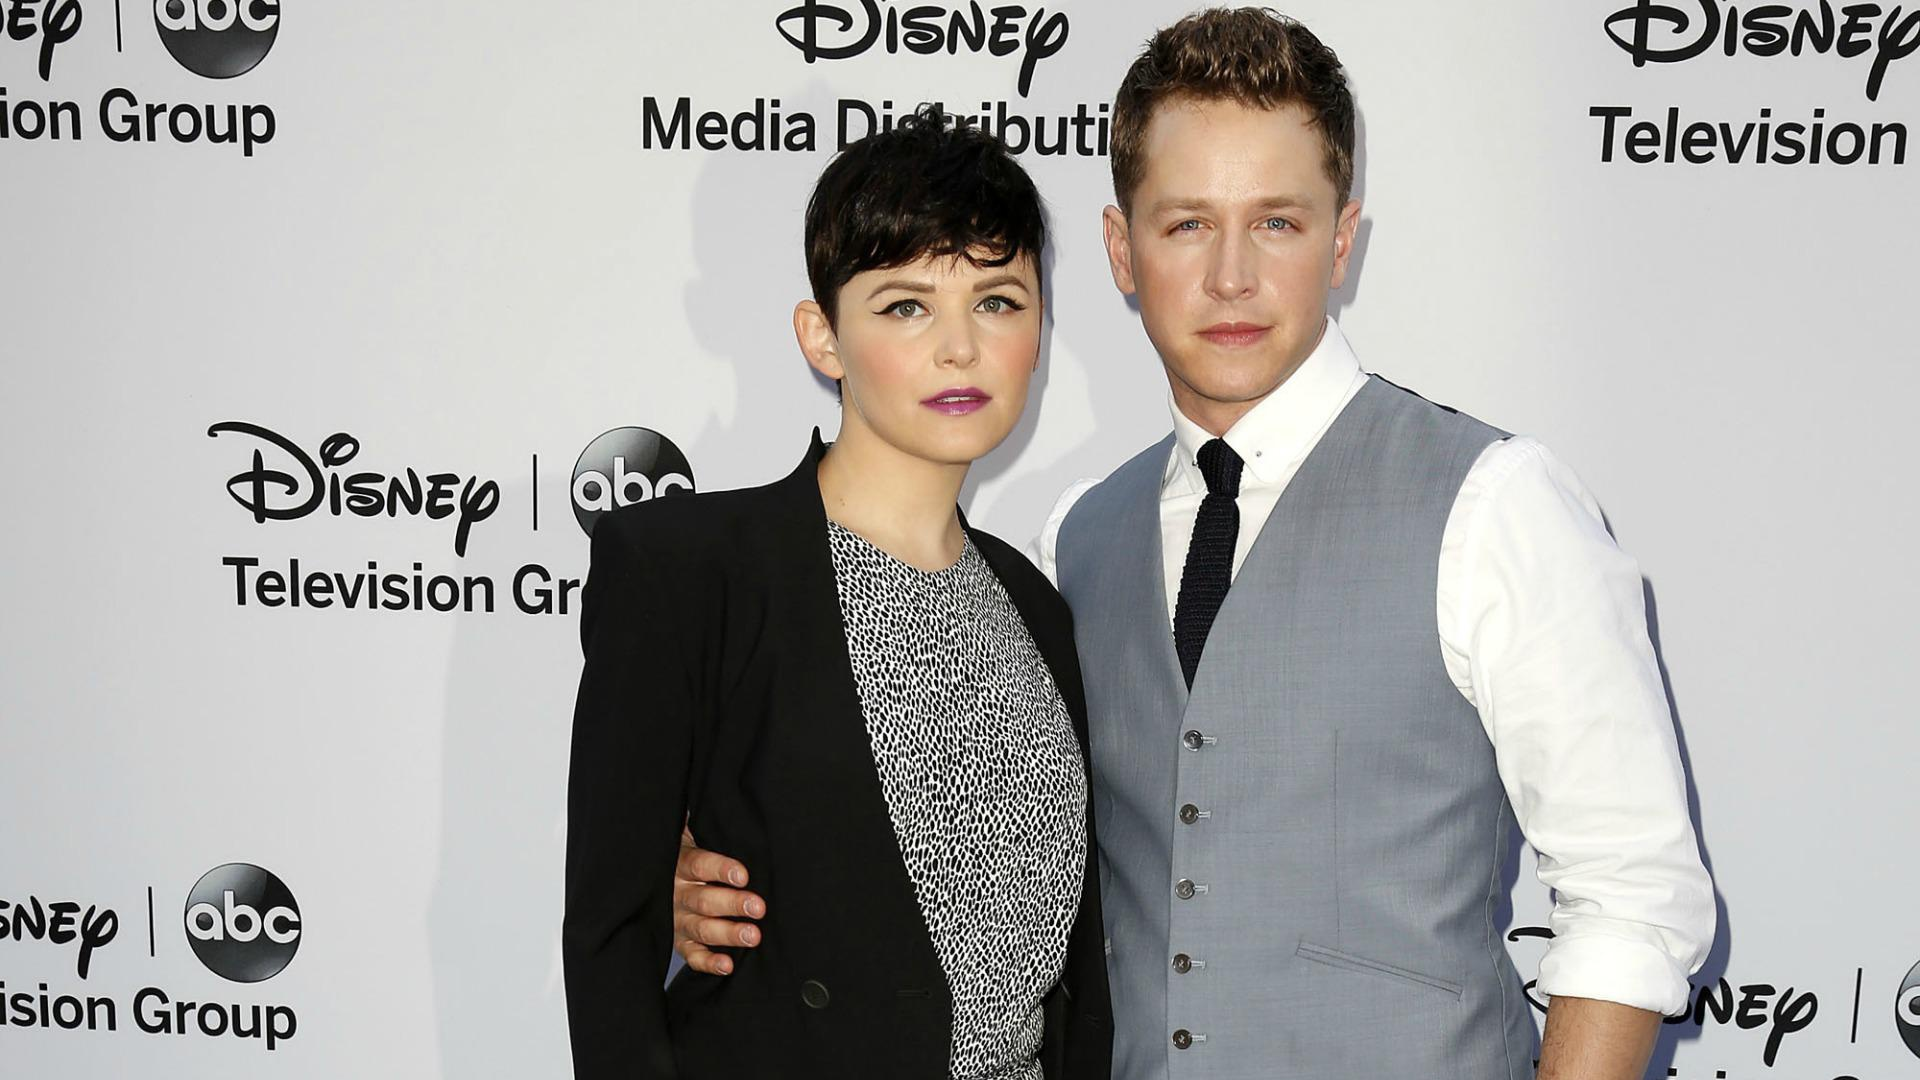 Ginnifer Goodwin & Josh Dallas have named their baby boy